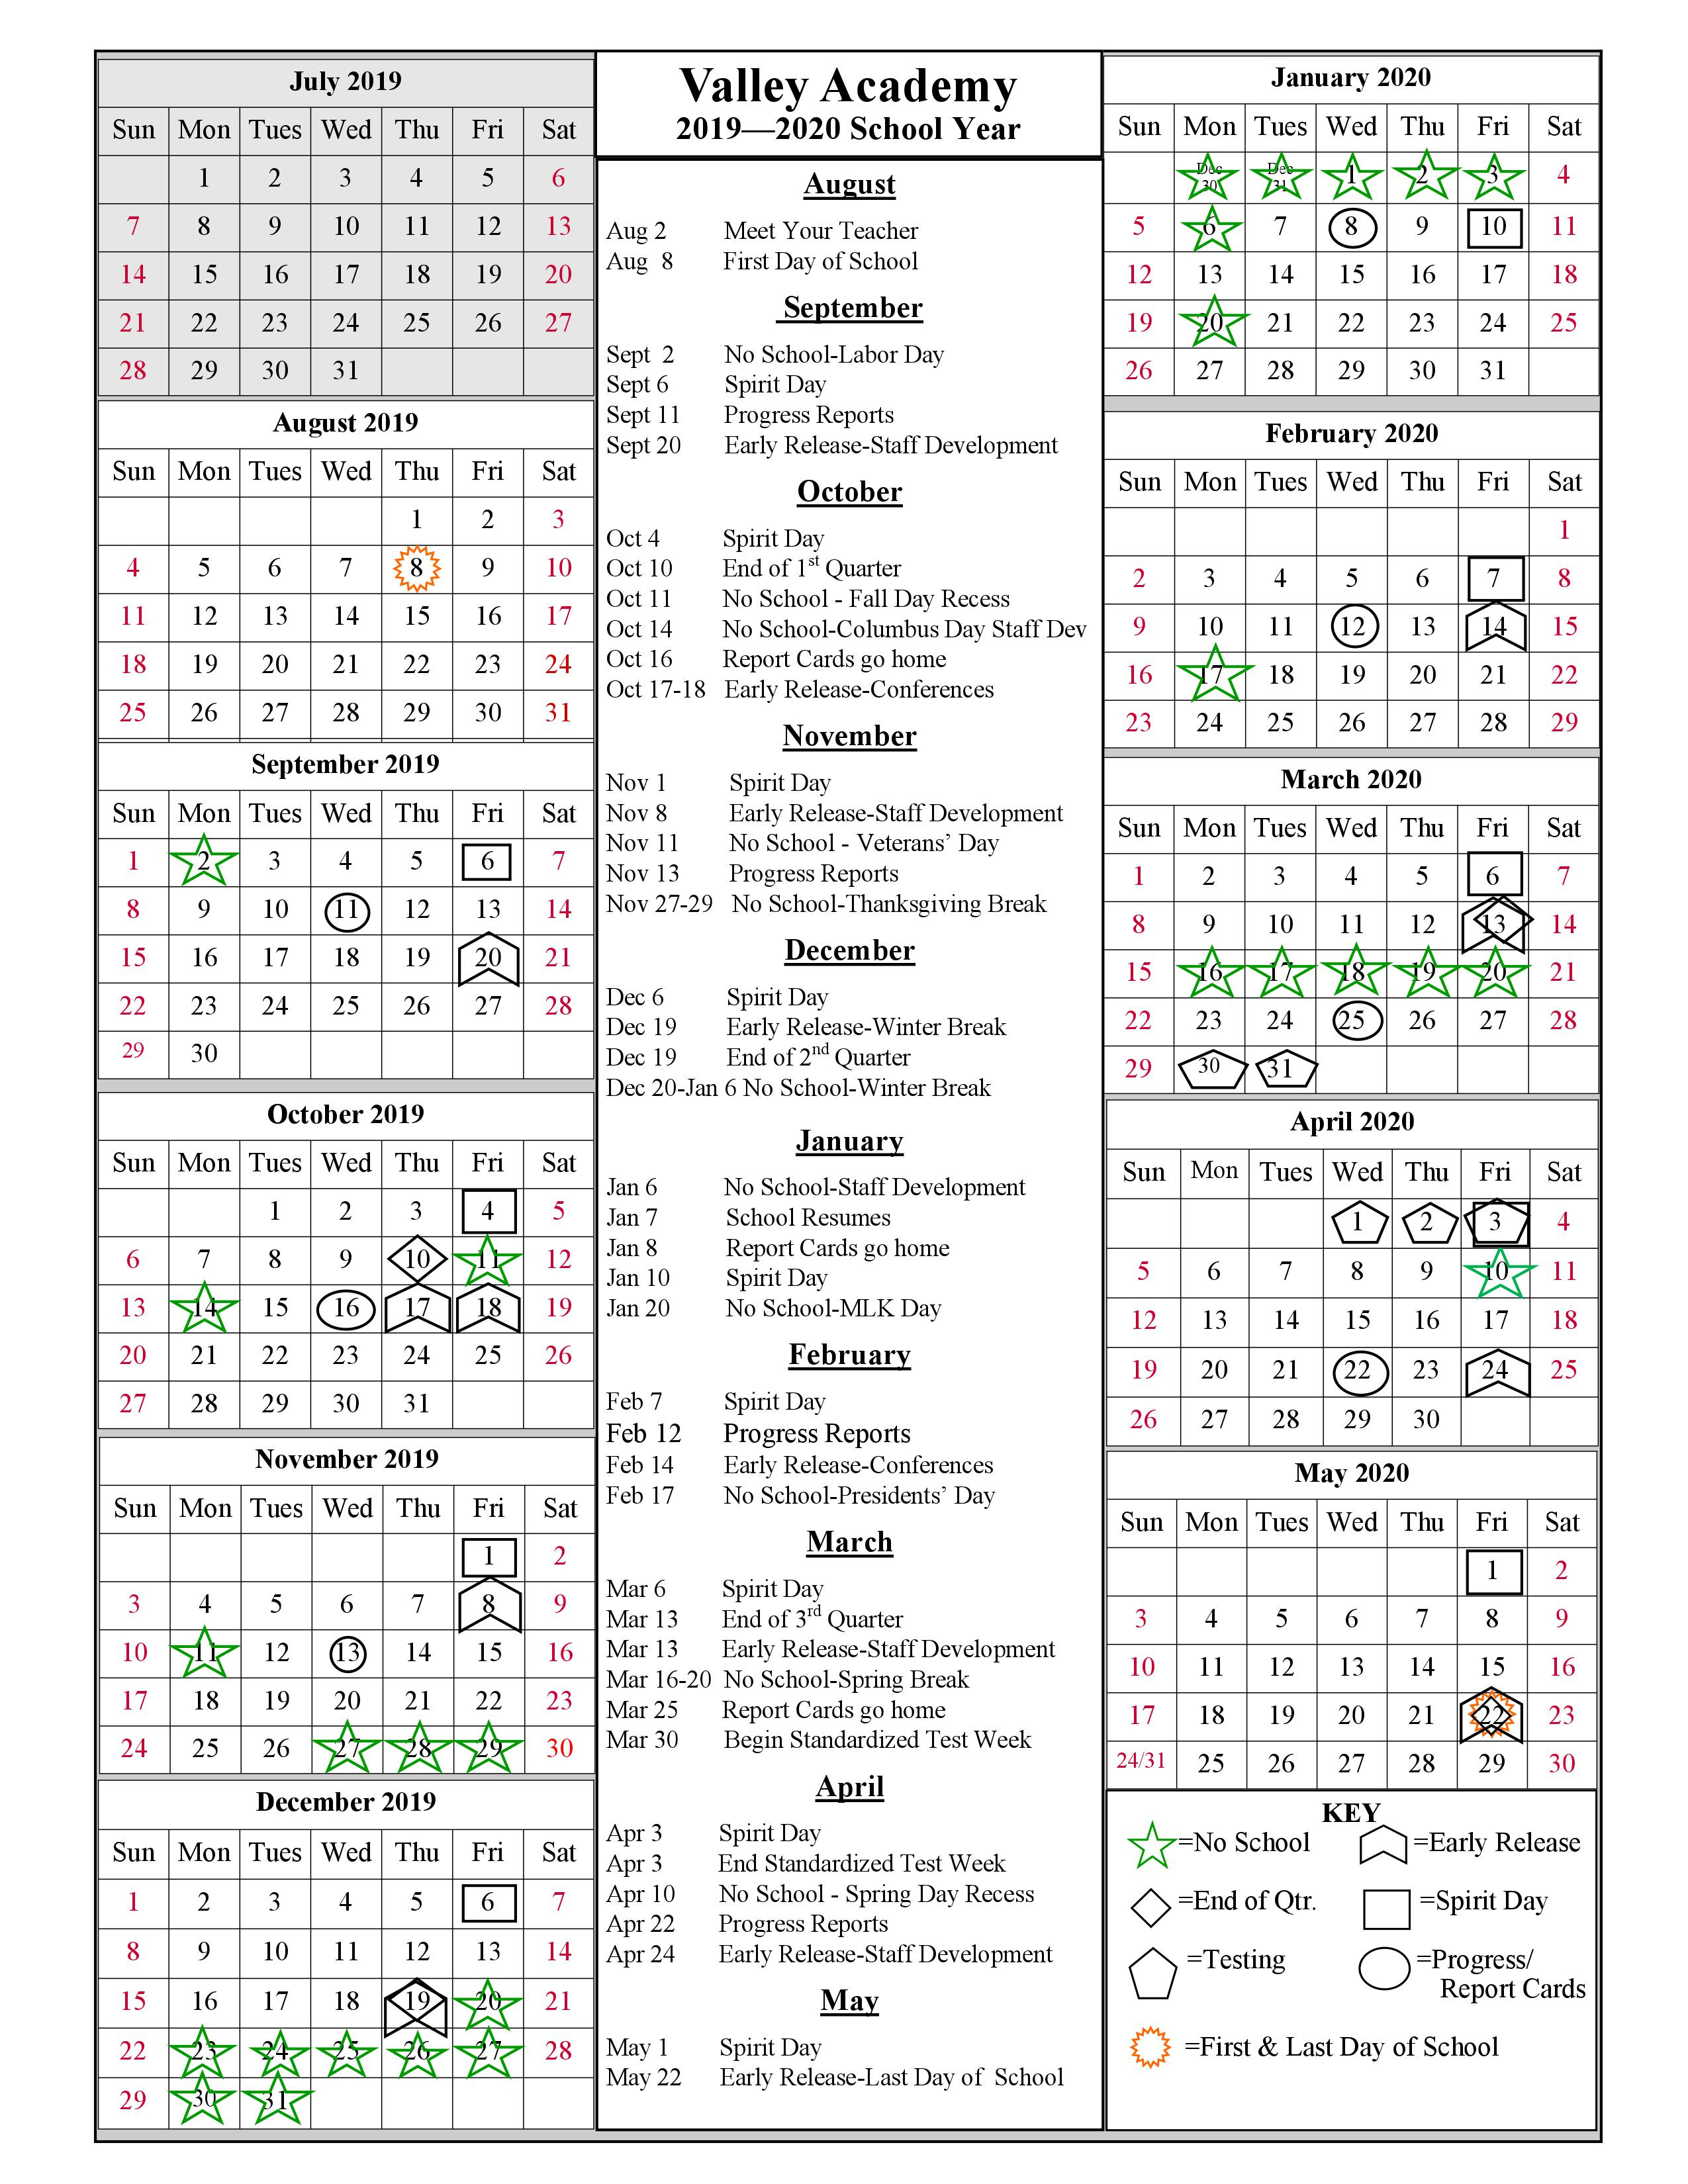 School Year Calendar 2019 2020 | Valley Academy For University Of Phoenix Holiday Calendar 2020